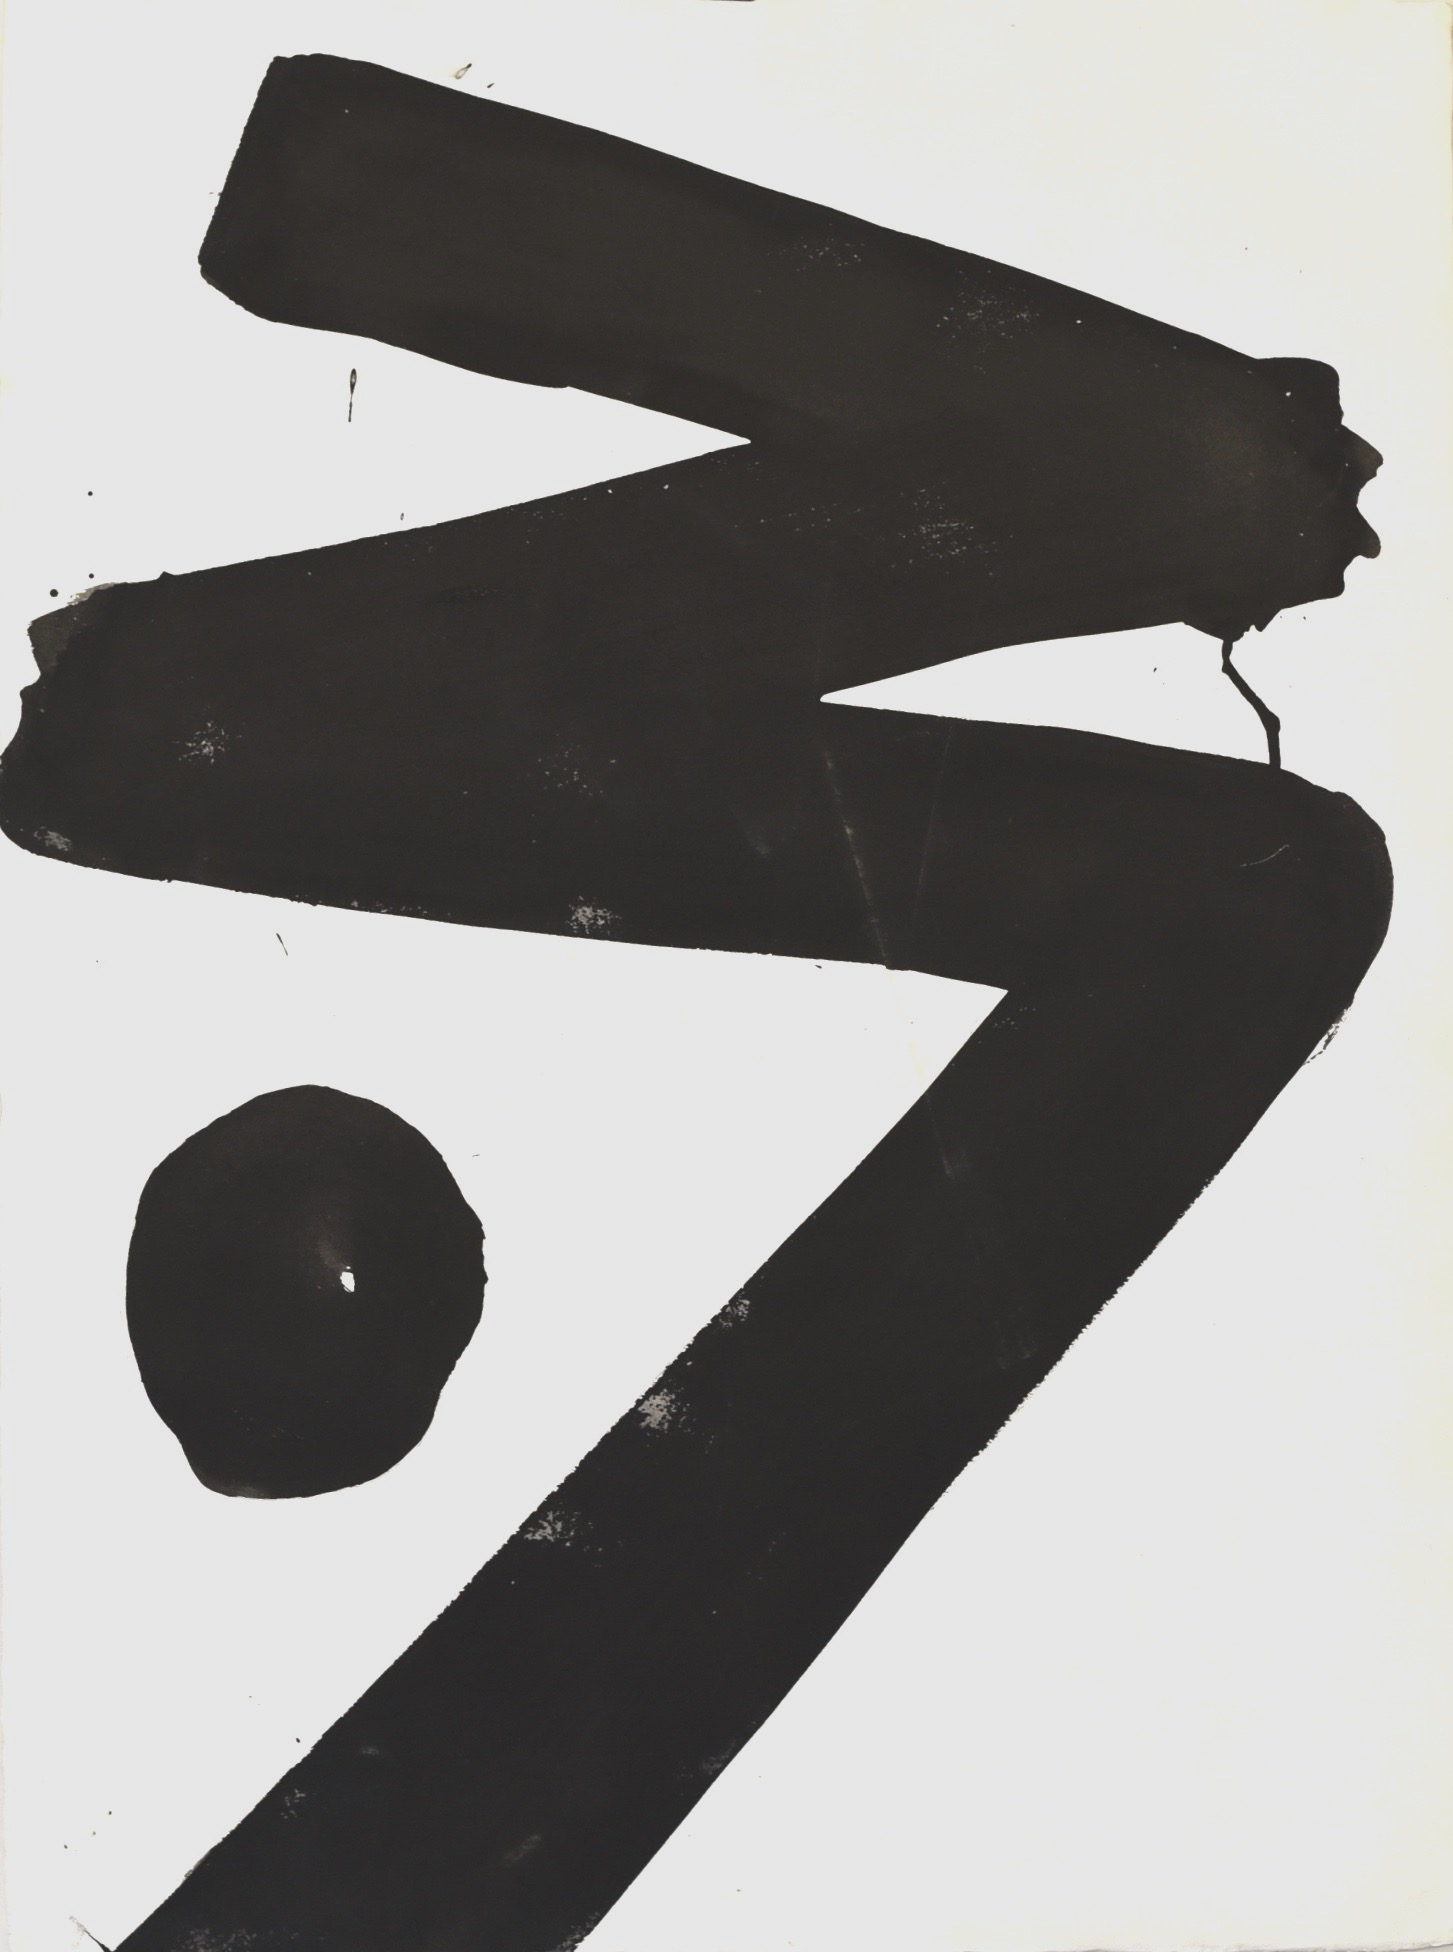 David Slivka, Untitled #2, early 70s, ink on paper,  31 x 23 in  $4000